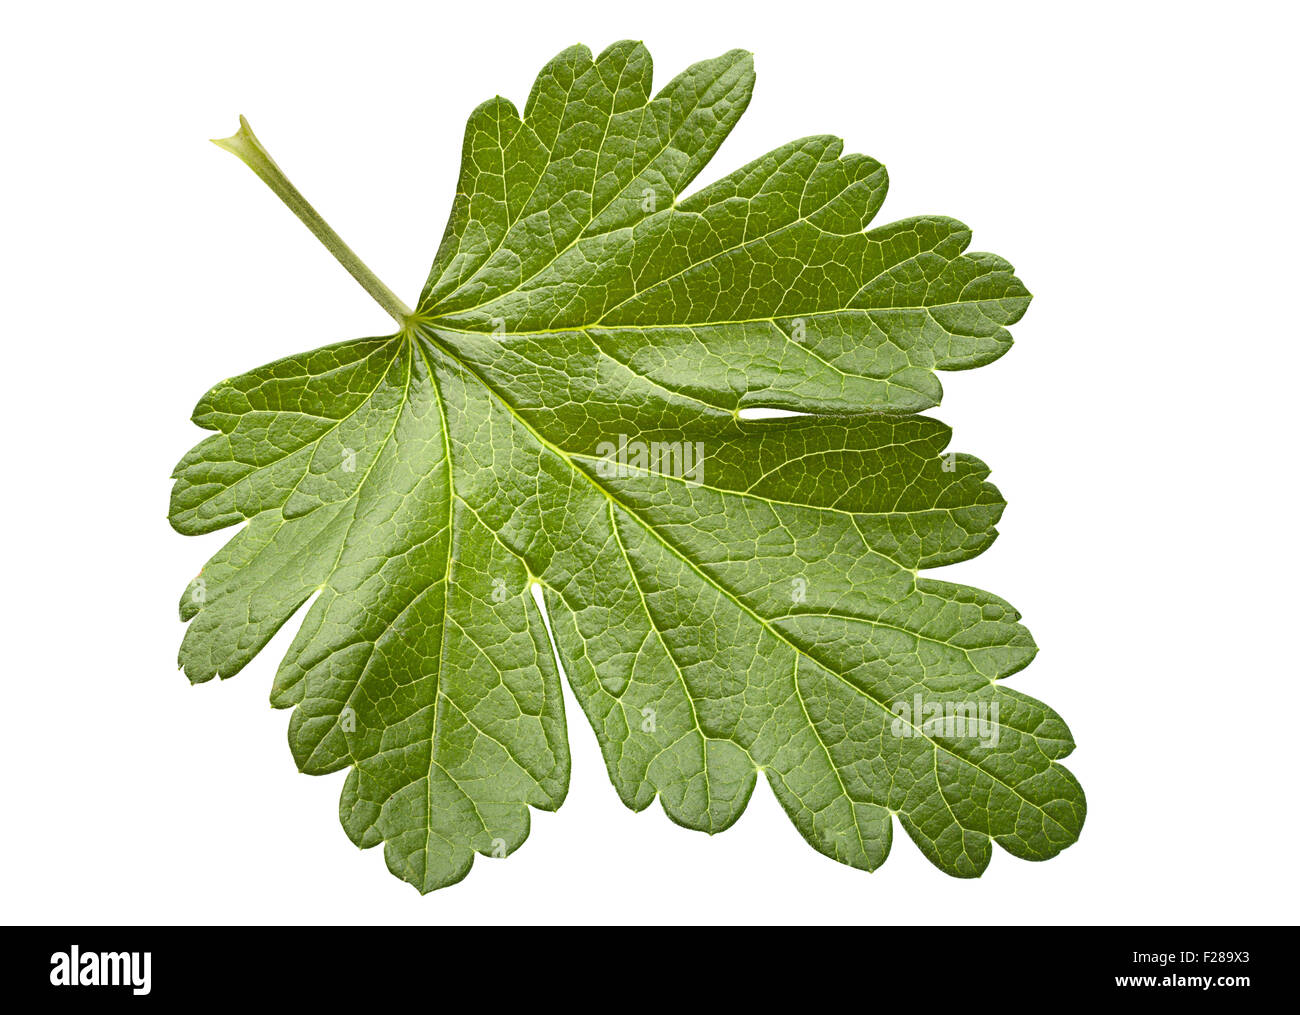 Gooseberry leaf closeup isolated on white background - Stock Image